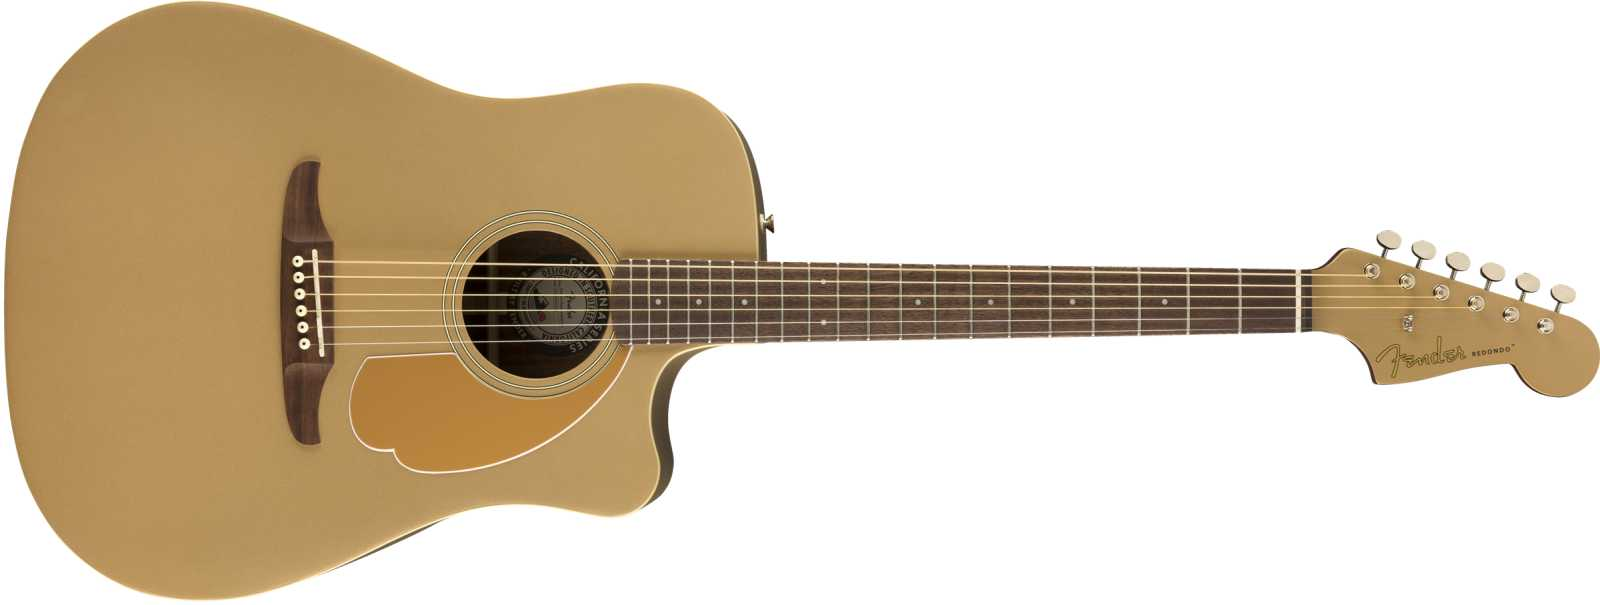 Fender Redondo Player Bronze Satin